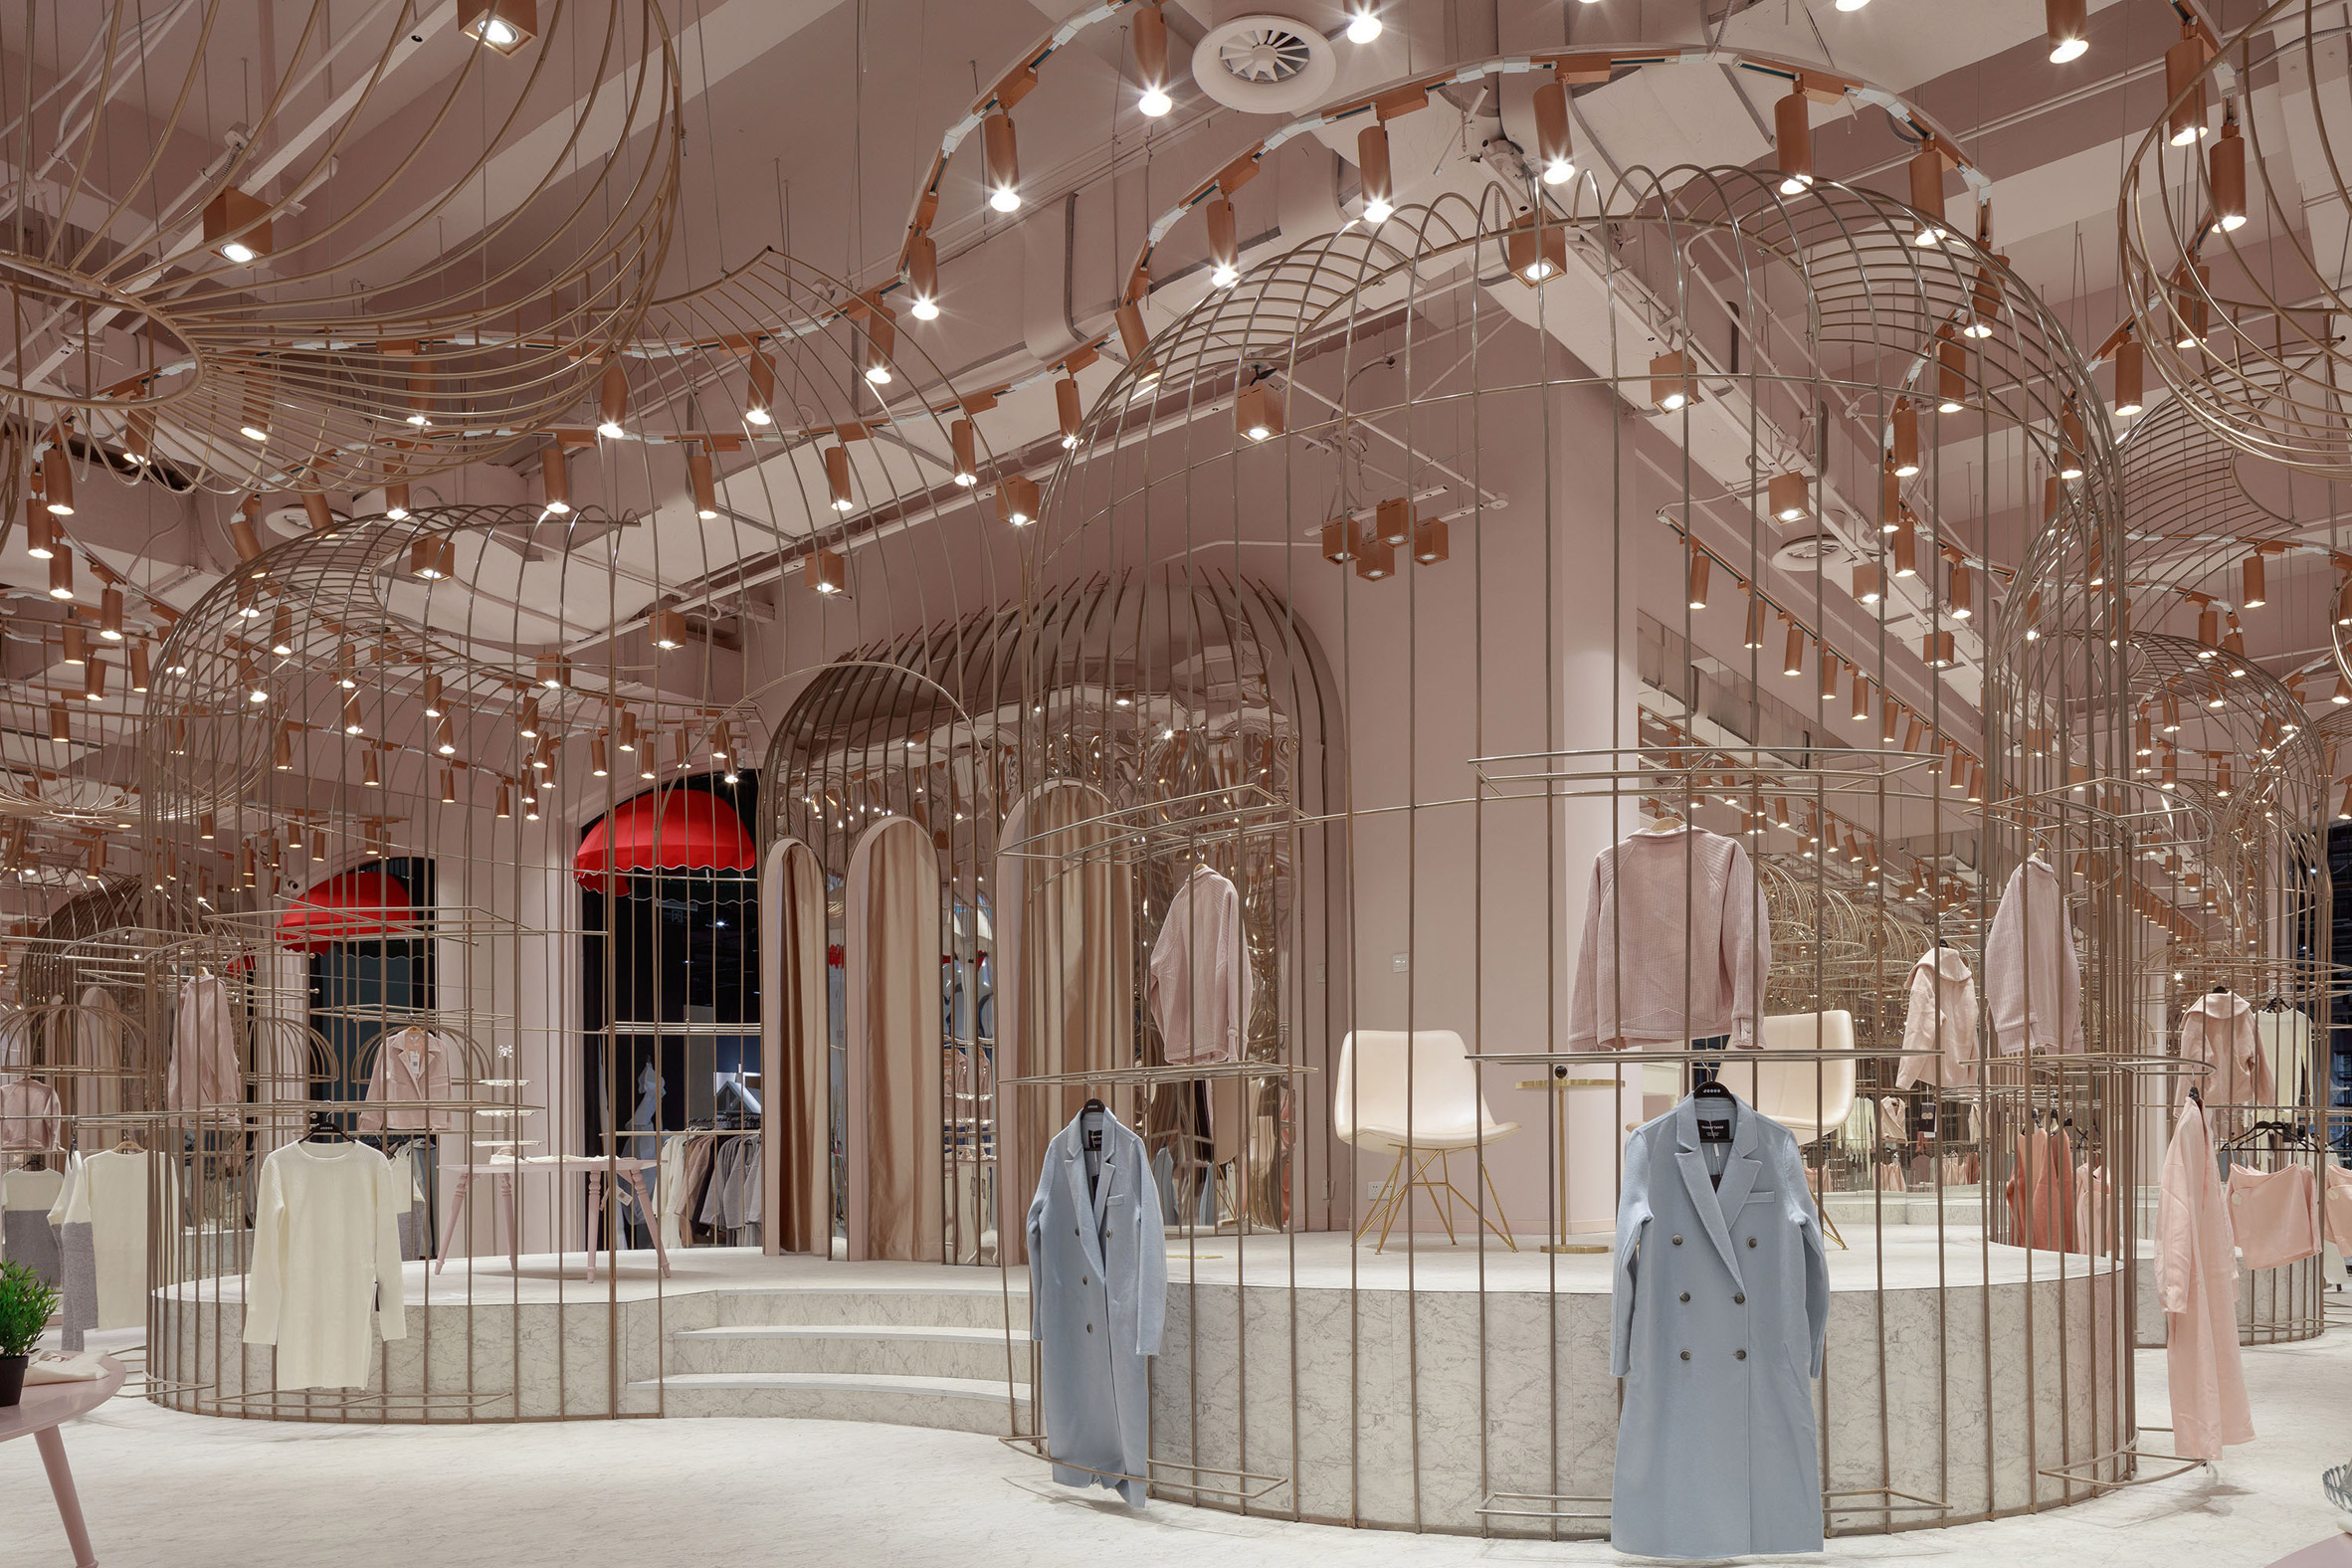 jooos-fitting-room-li-xiang-interiors-retail-china_dezeen_2364_col_19